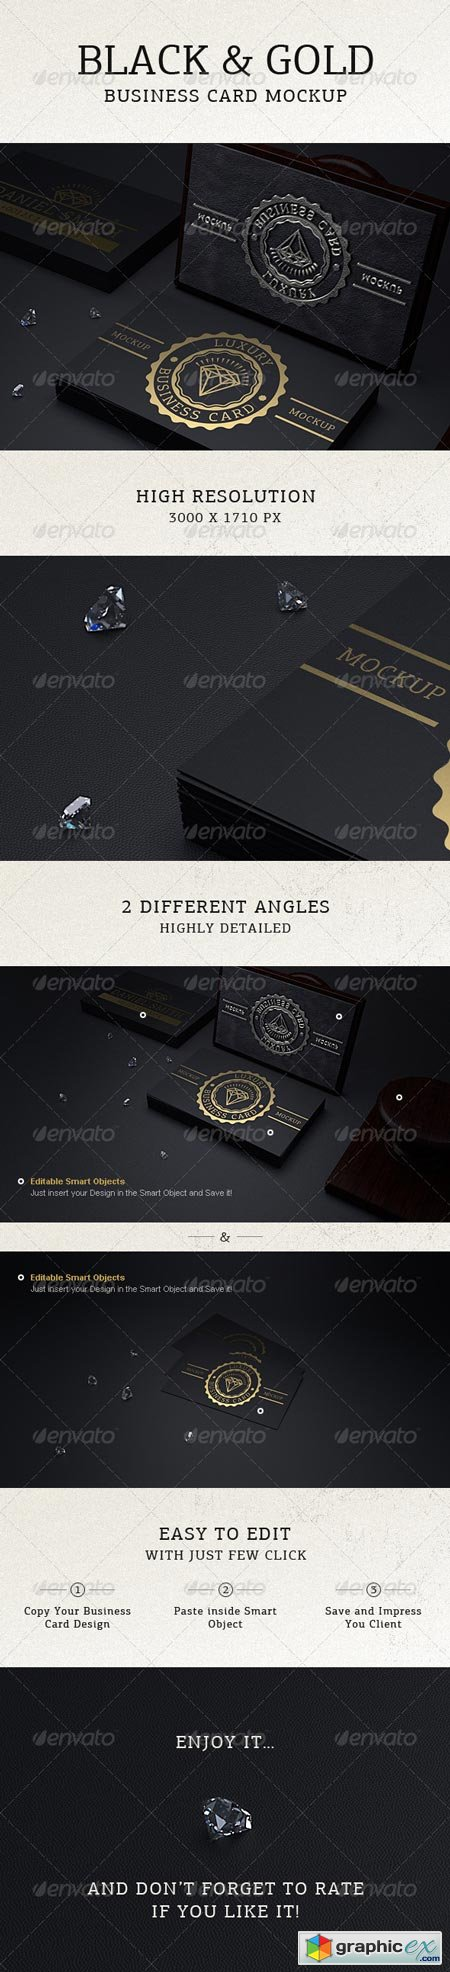 Photorealistic Black & Gold Business Card Mock Up 6400458